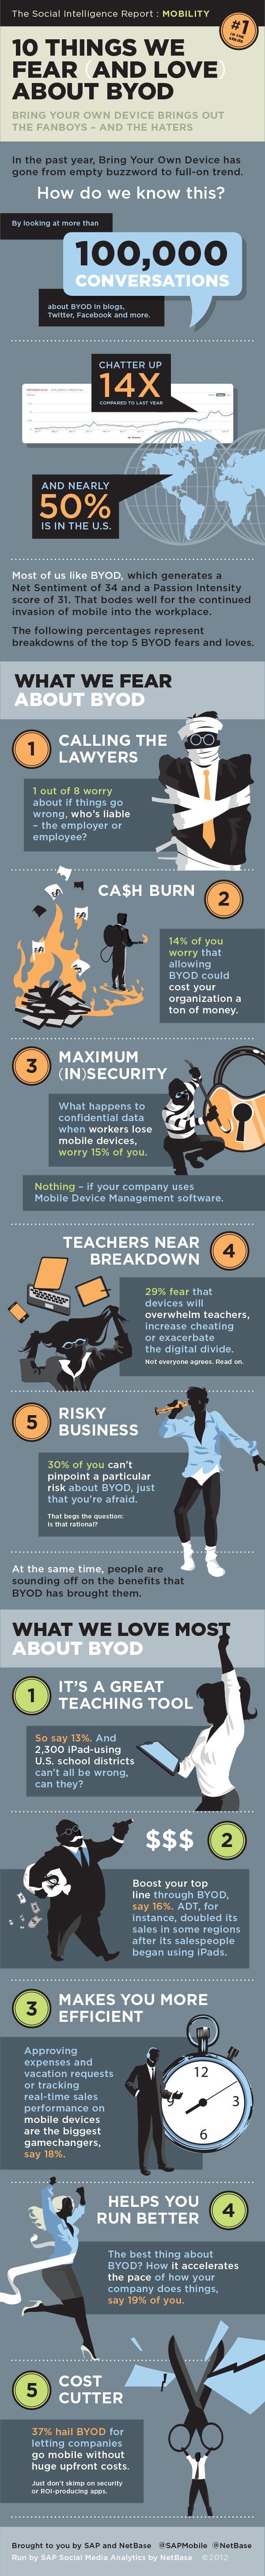 Infographic: The Ten Things We Fear (And Love) About BYOD - Forbes